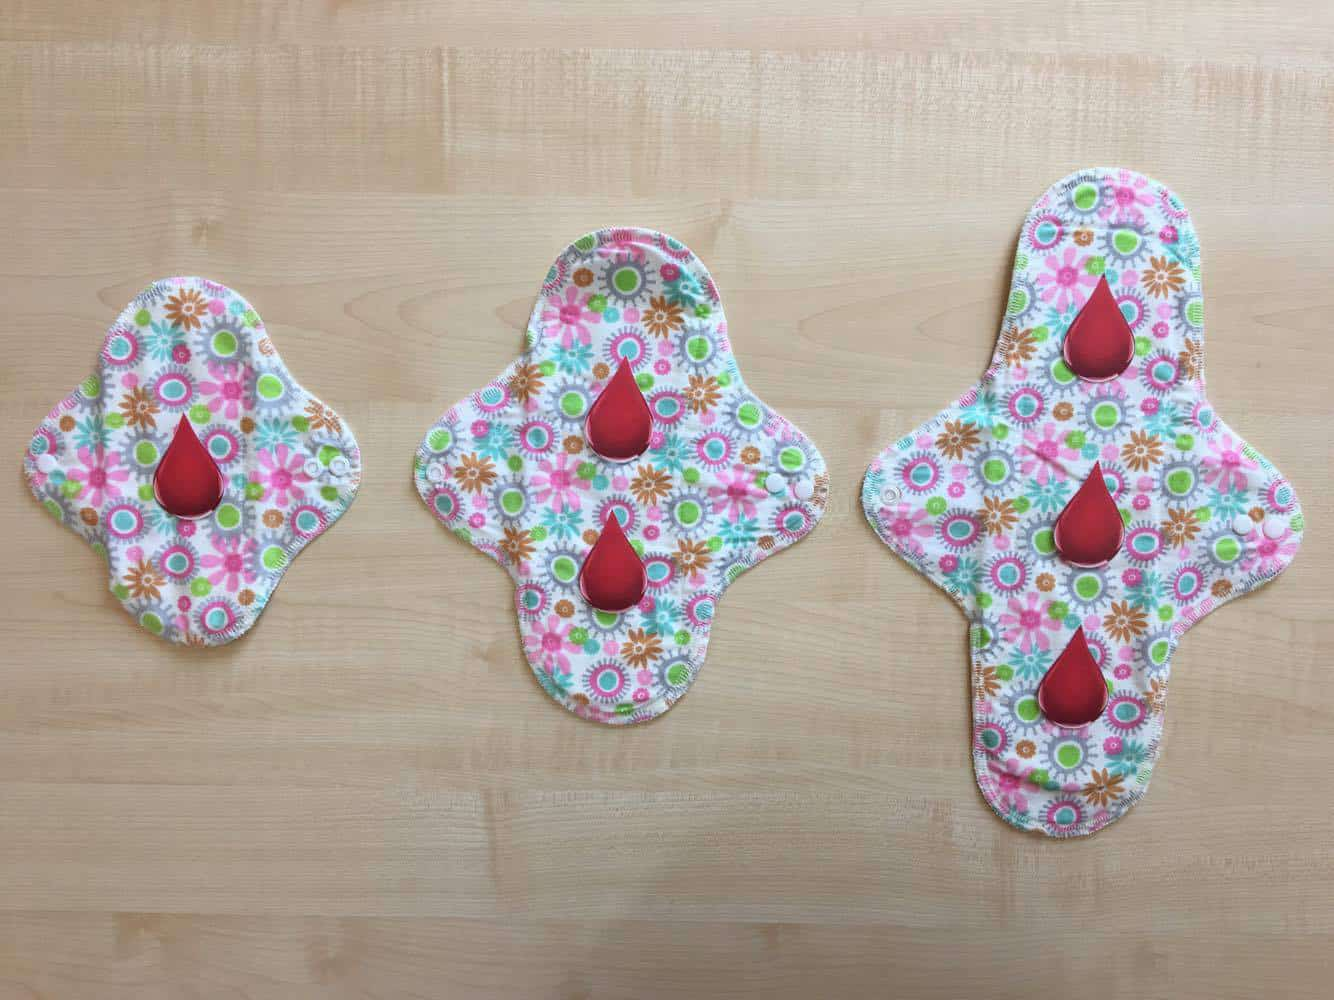 choosing the right size cloth pads